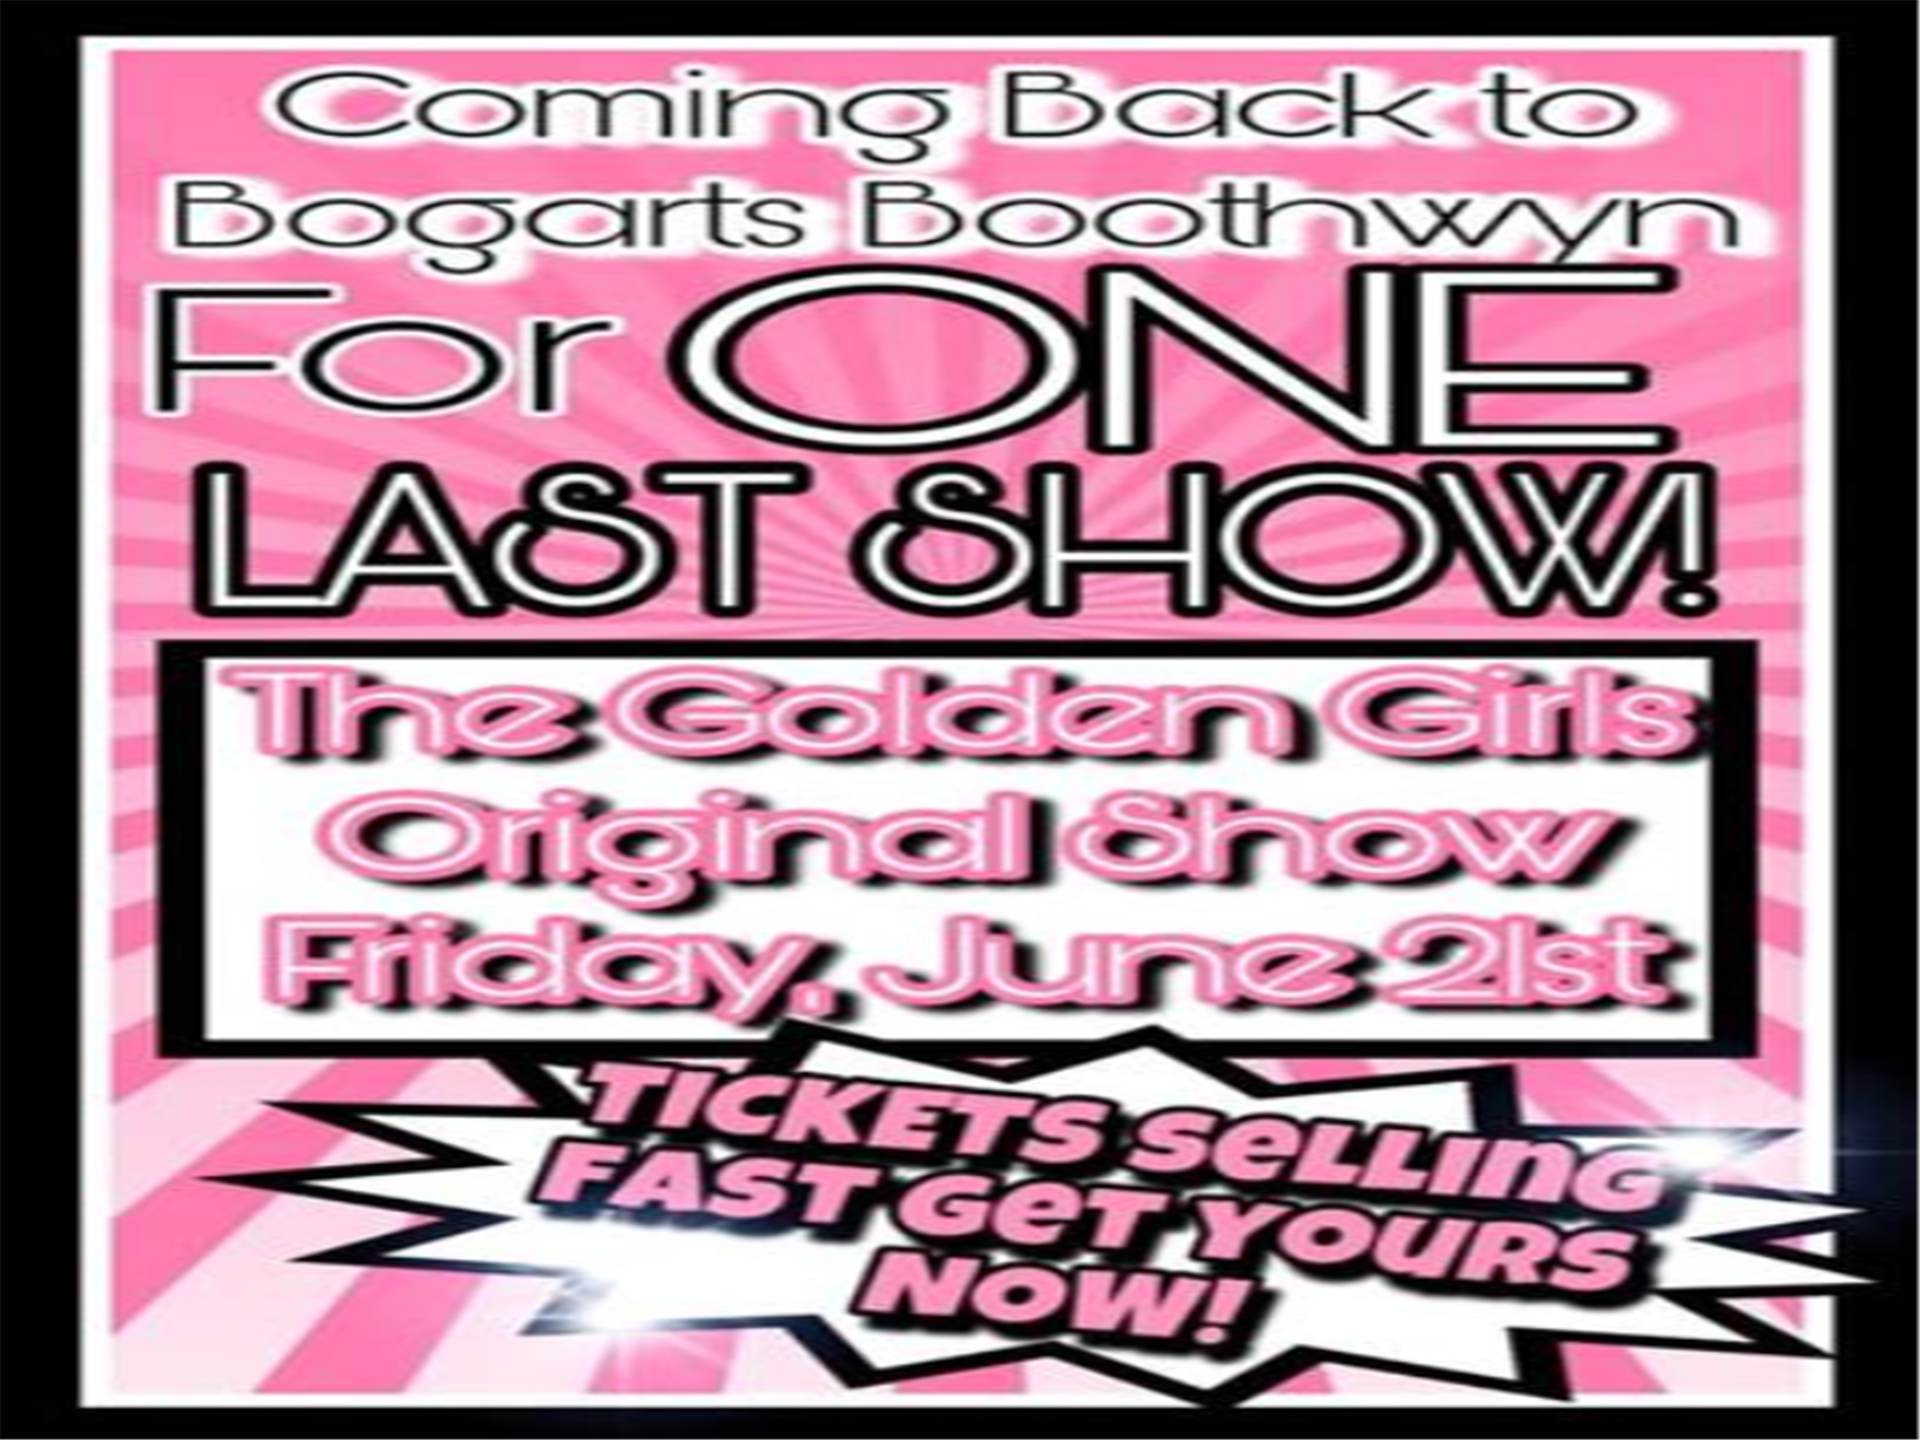 coming back to bogarts boothwyn for one last show! the golden girls original show friday, june 21st- tickets are selling fast get yours now!